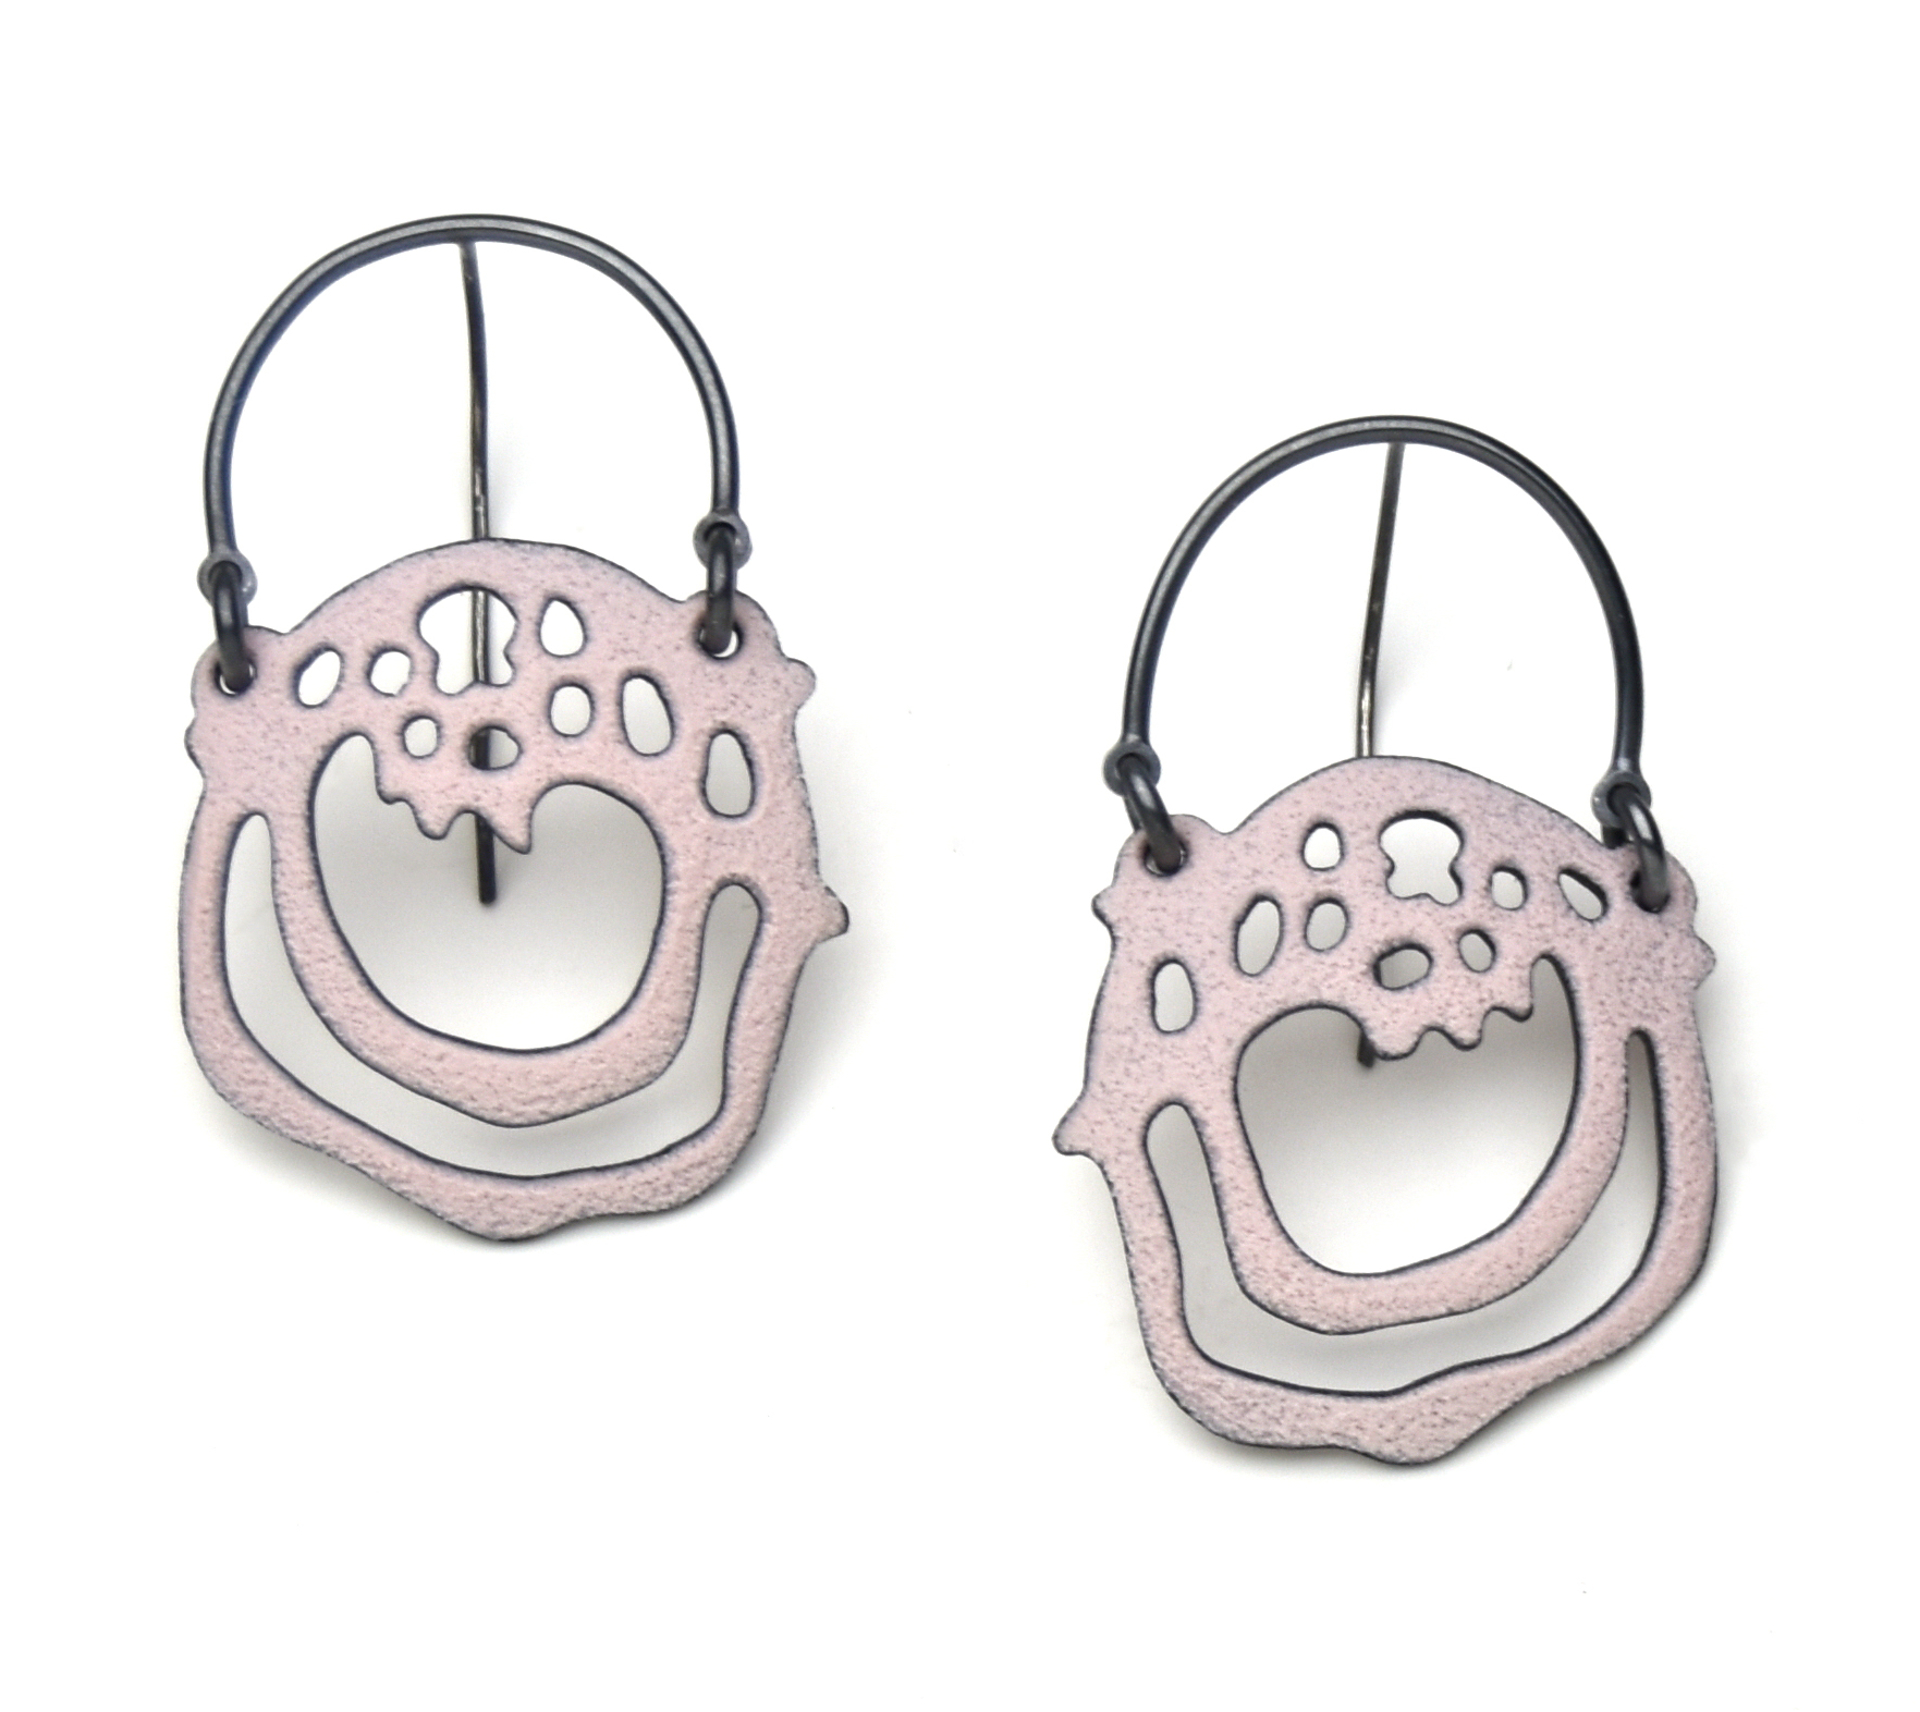 Round Cell Earrings by Joanna Nealey